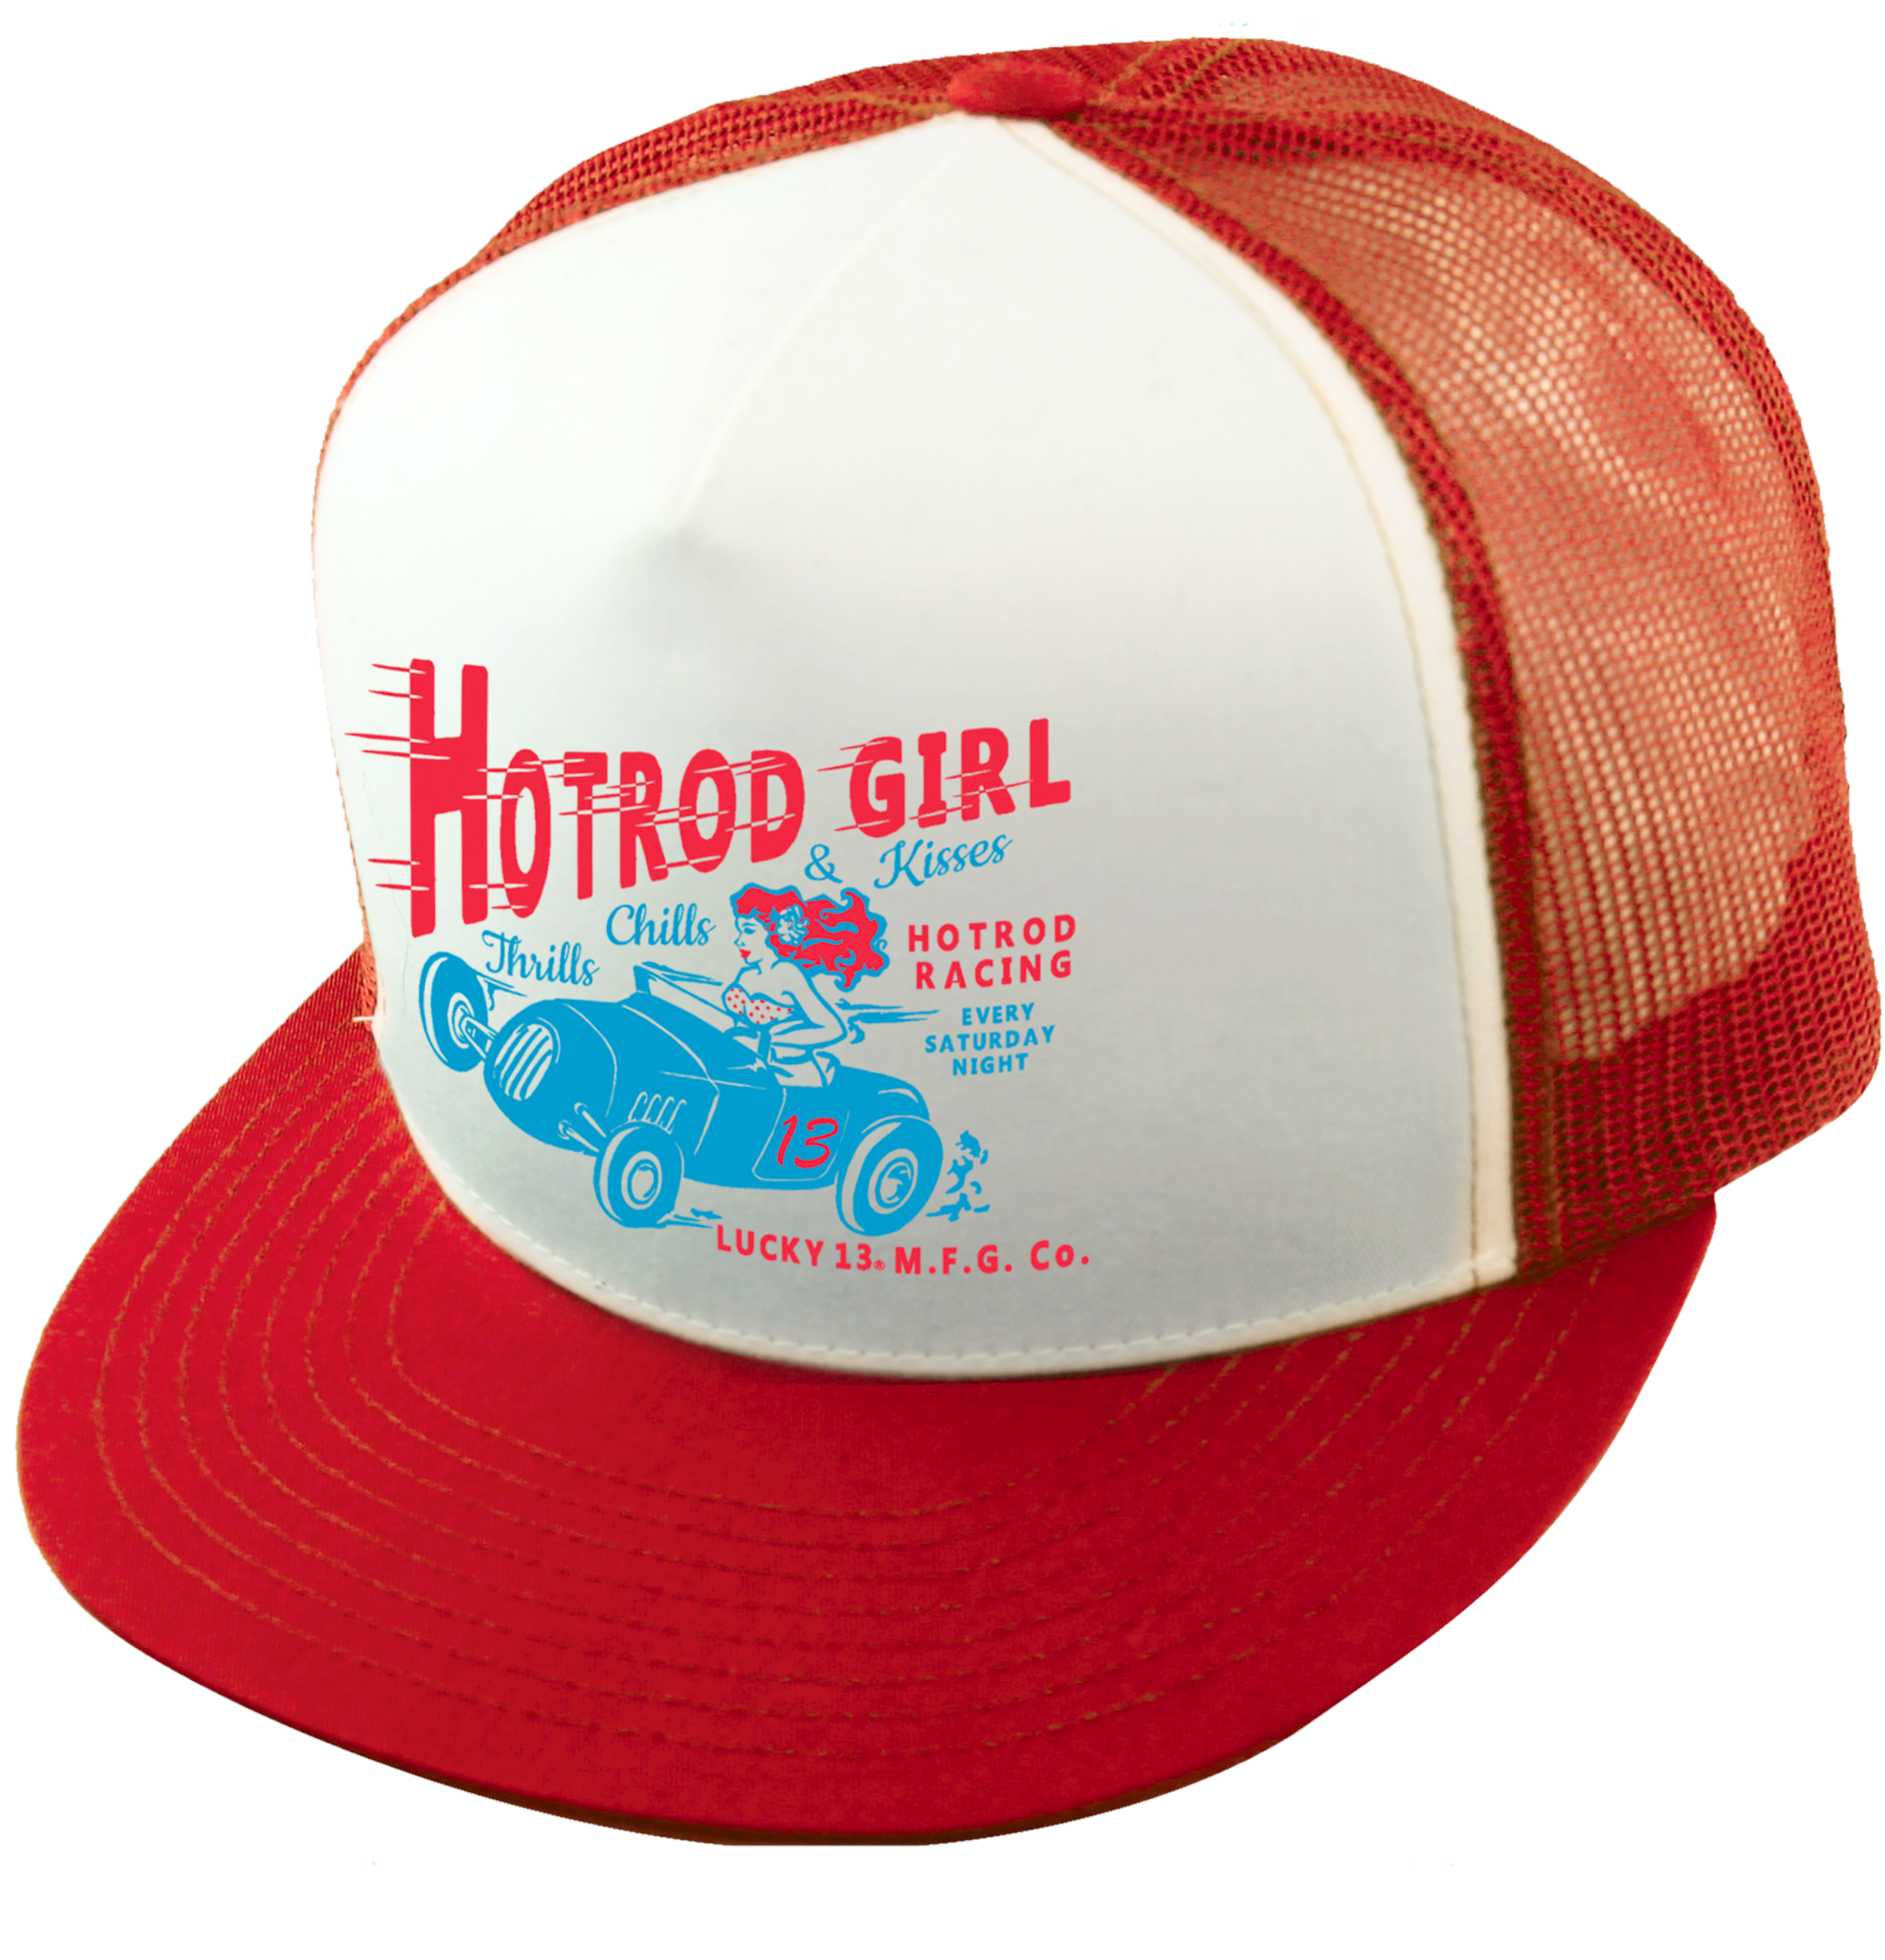 The HOT ROD GIRL Trucker Cap